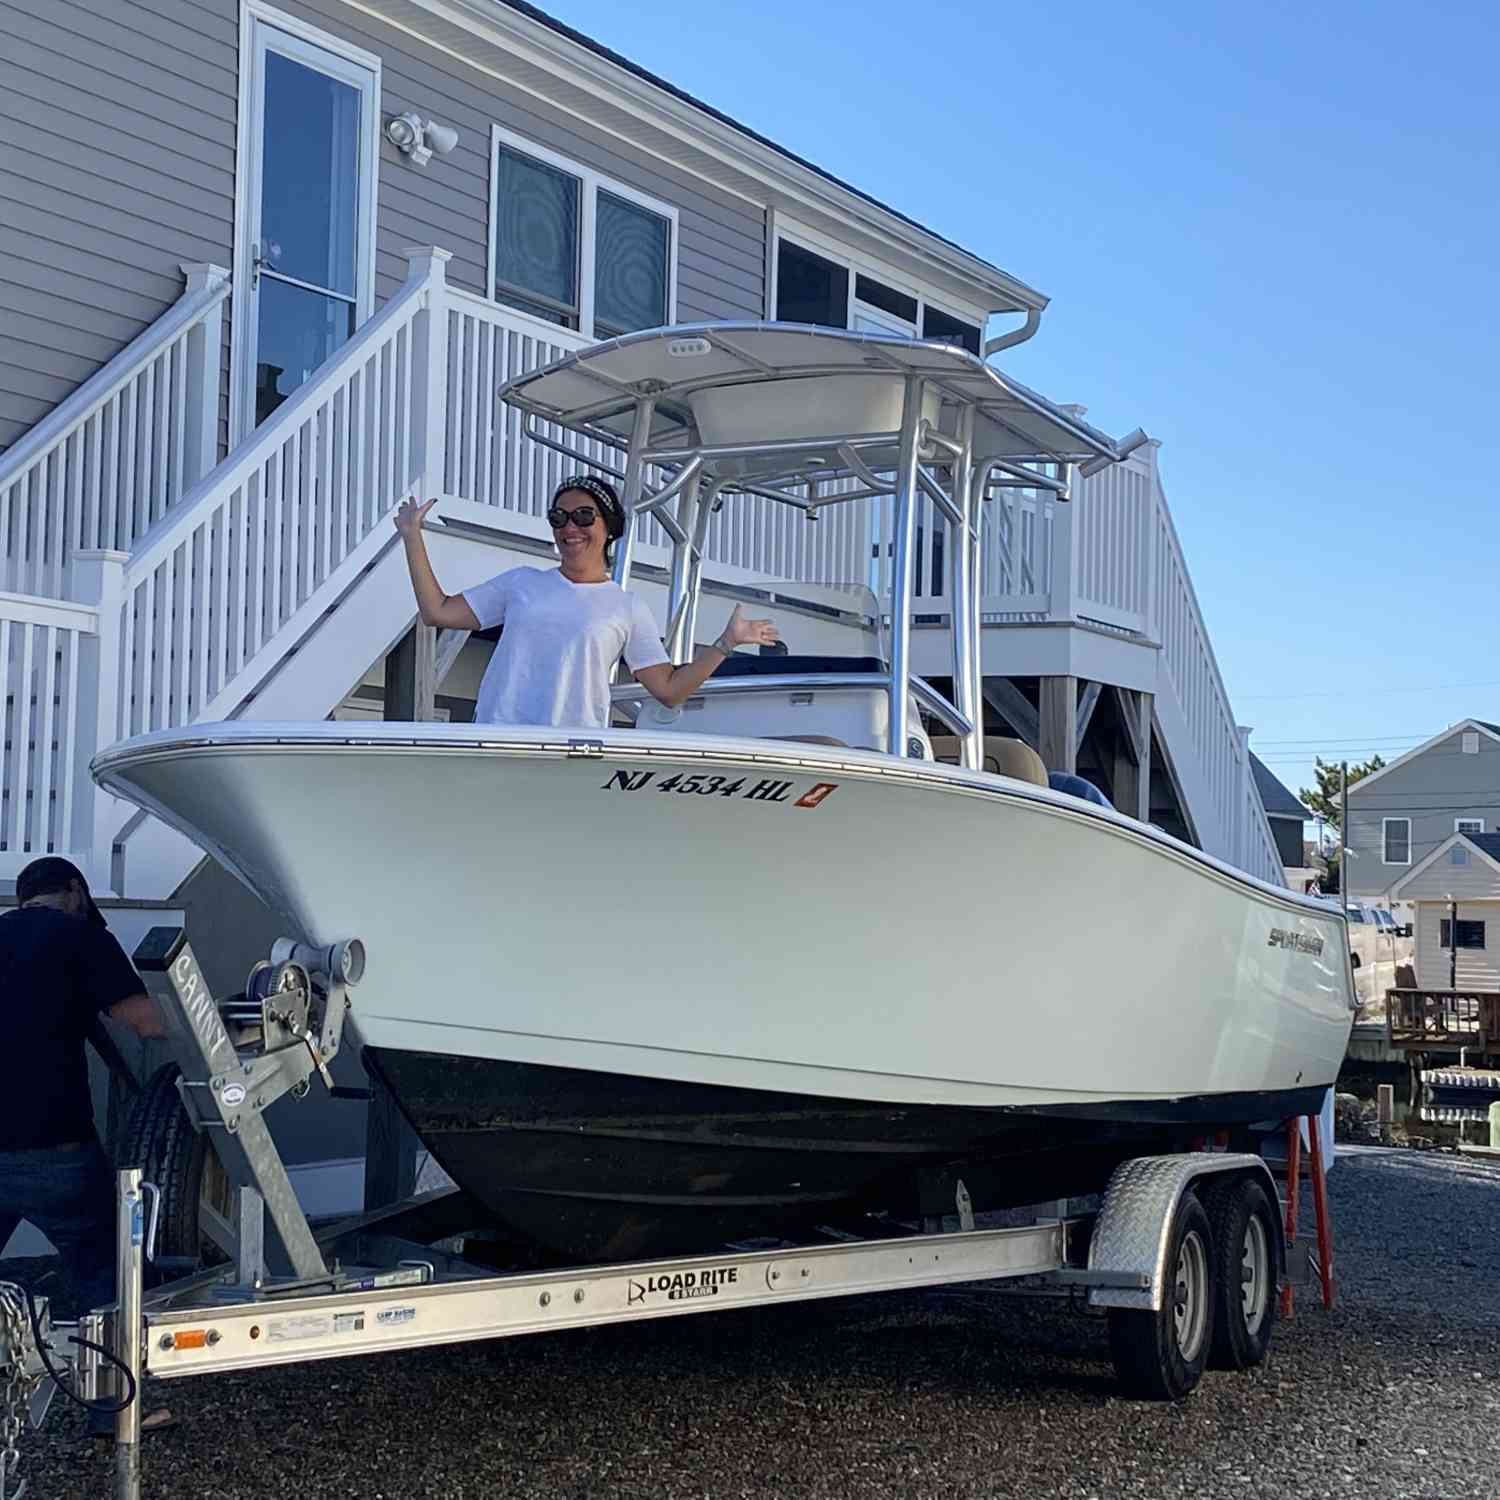 Title: Is it summer yet - On board their Sportsman Heritage 211 Center Console - Location: Mystic Island NJ. Participating in the Photo Contest #SportsmanFebruary2021